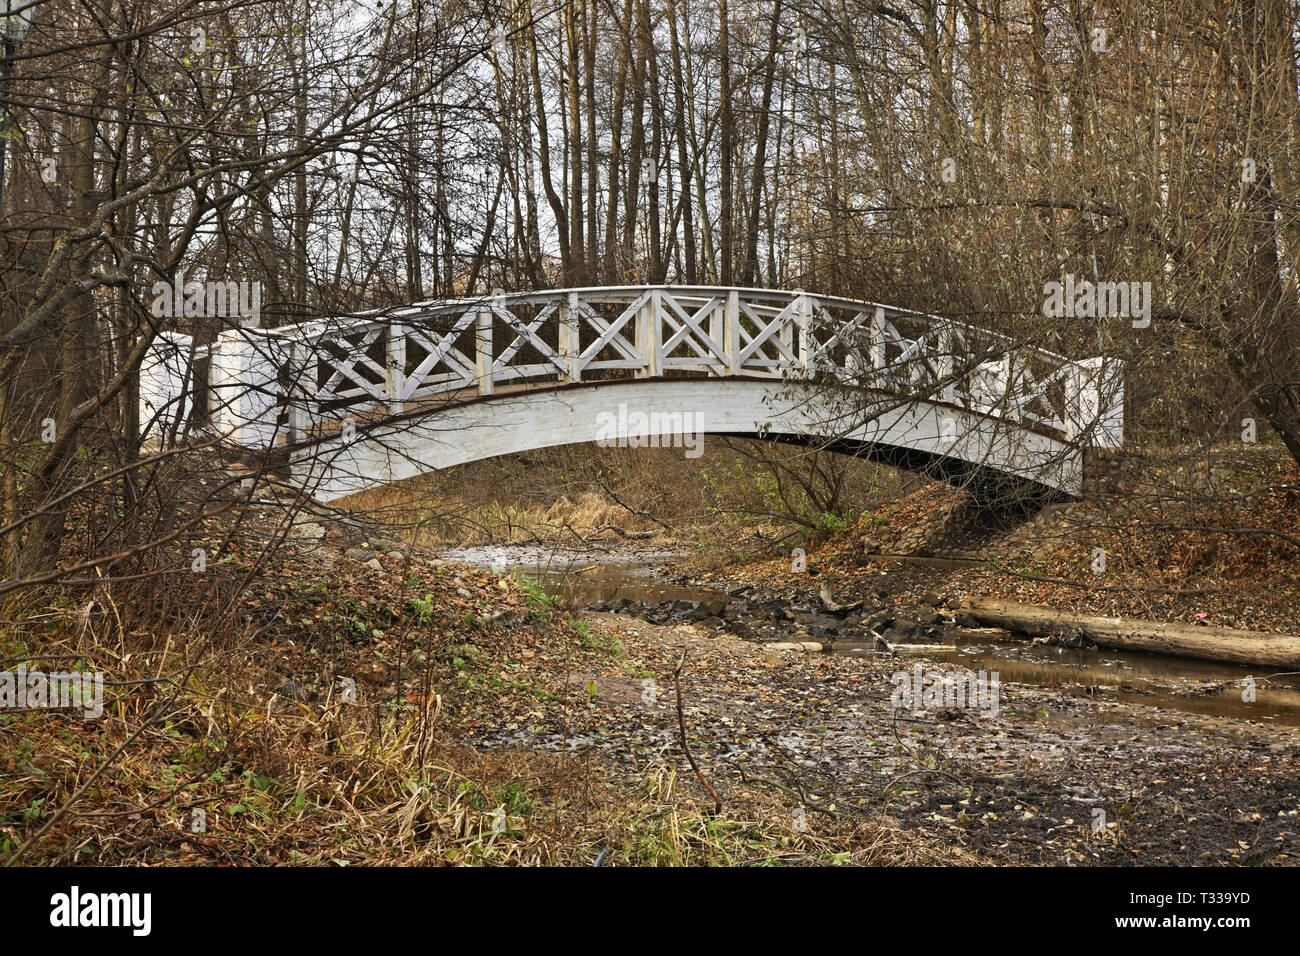 Humpback bridge in Ostafyevo park near Podolsk. Russia - Stock Image